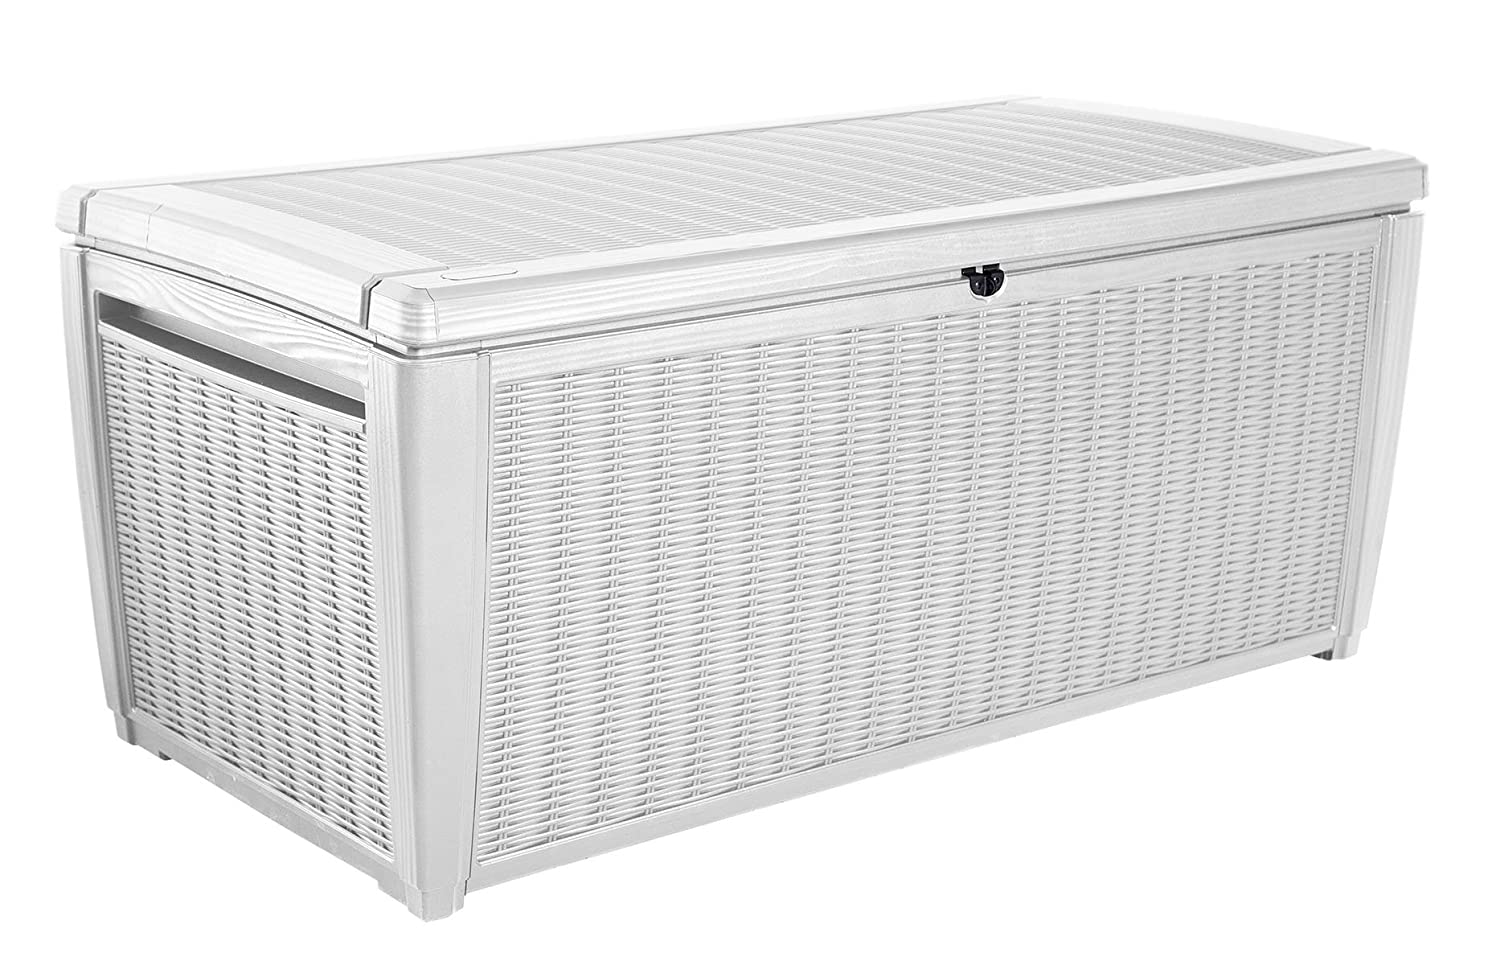 Keter Sumatra 135 gallon Outdoor Storage Rattan Deck Box, White 236960